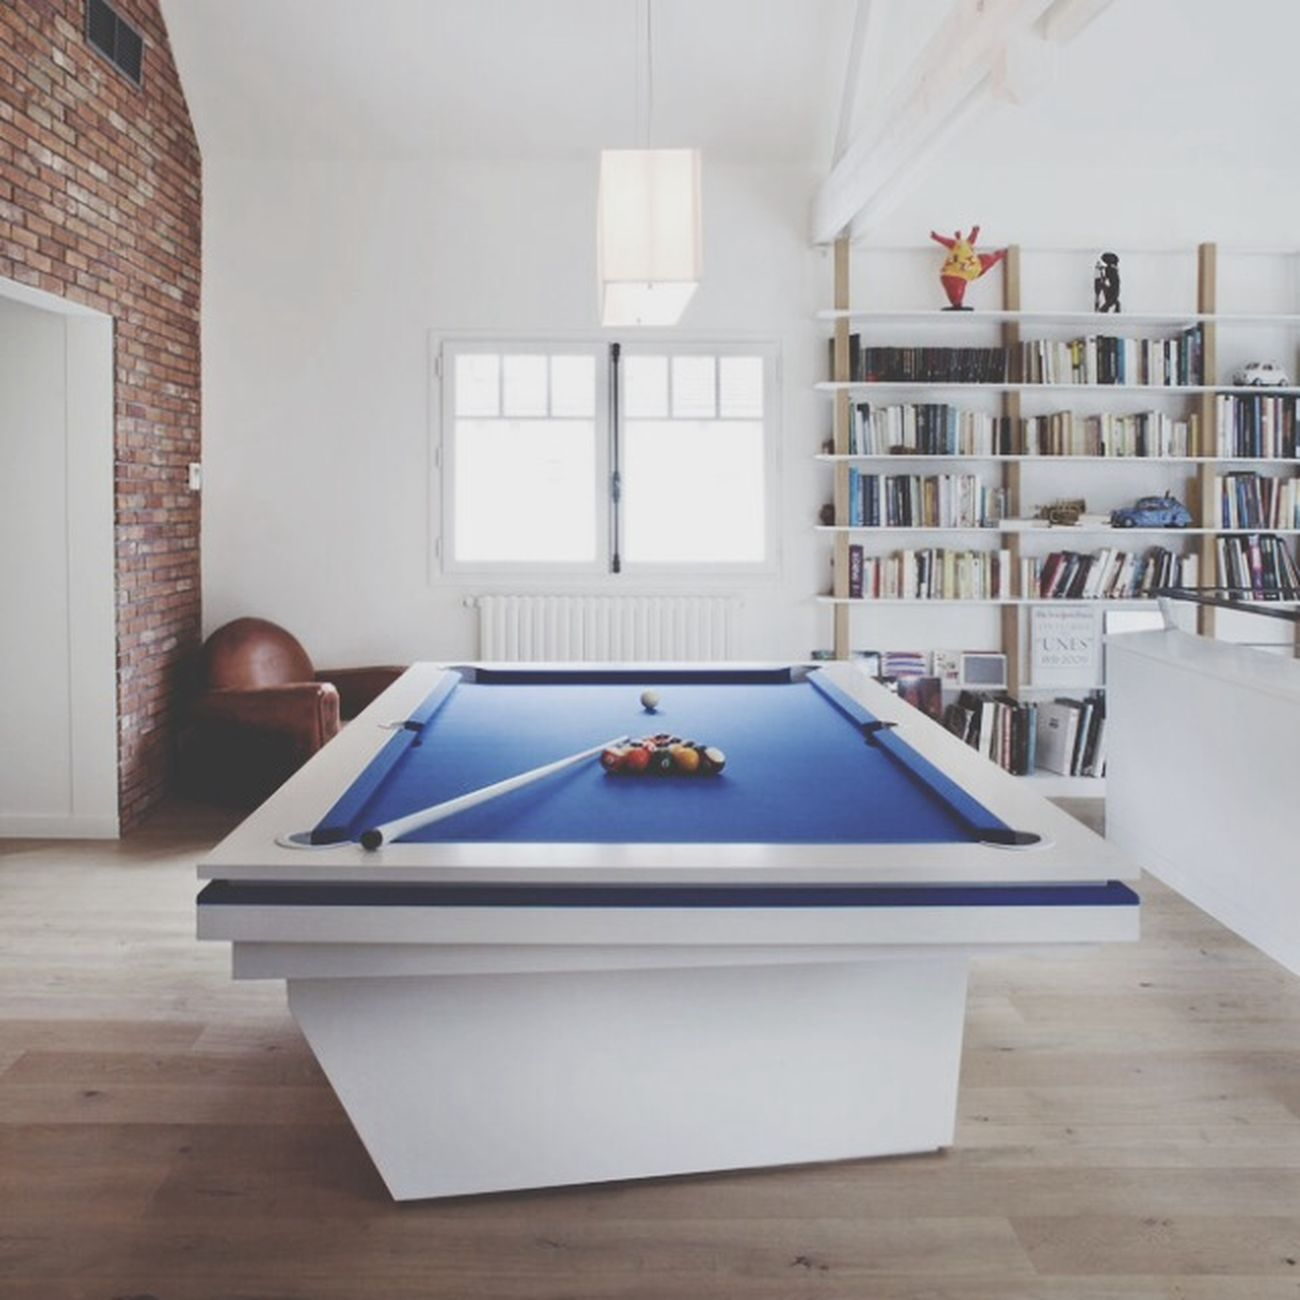 Billard Interior Desin Modern Architecture Play Time